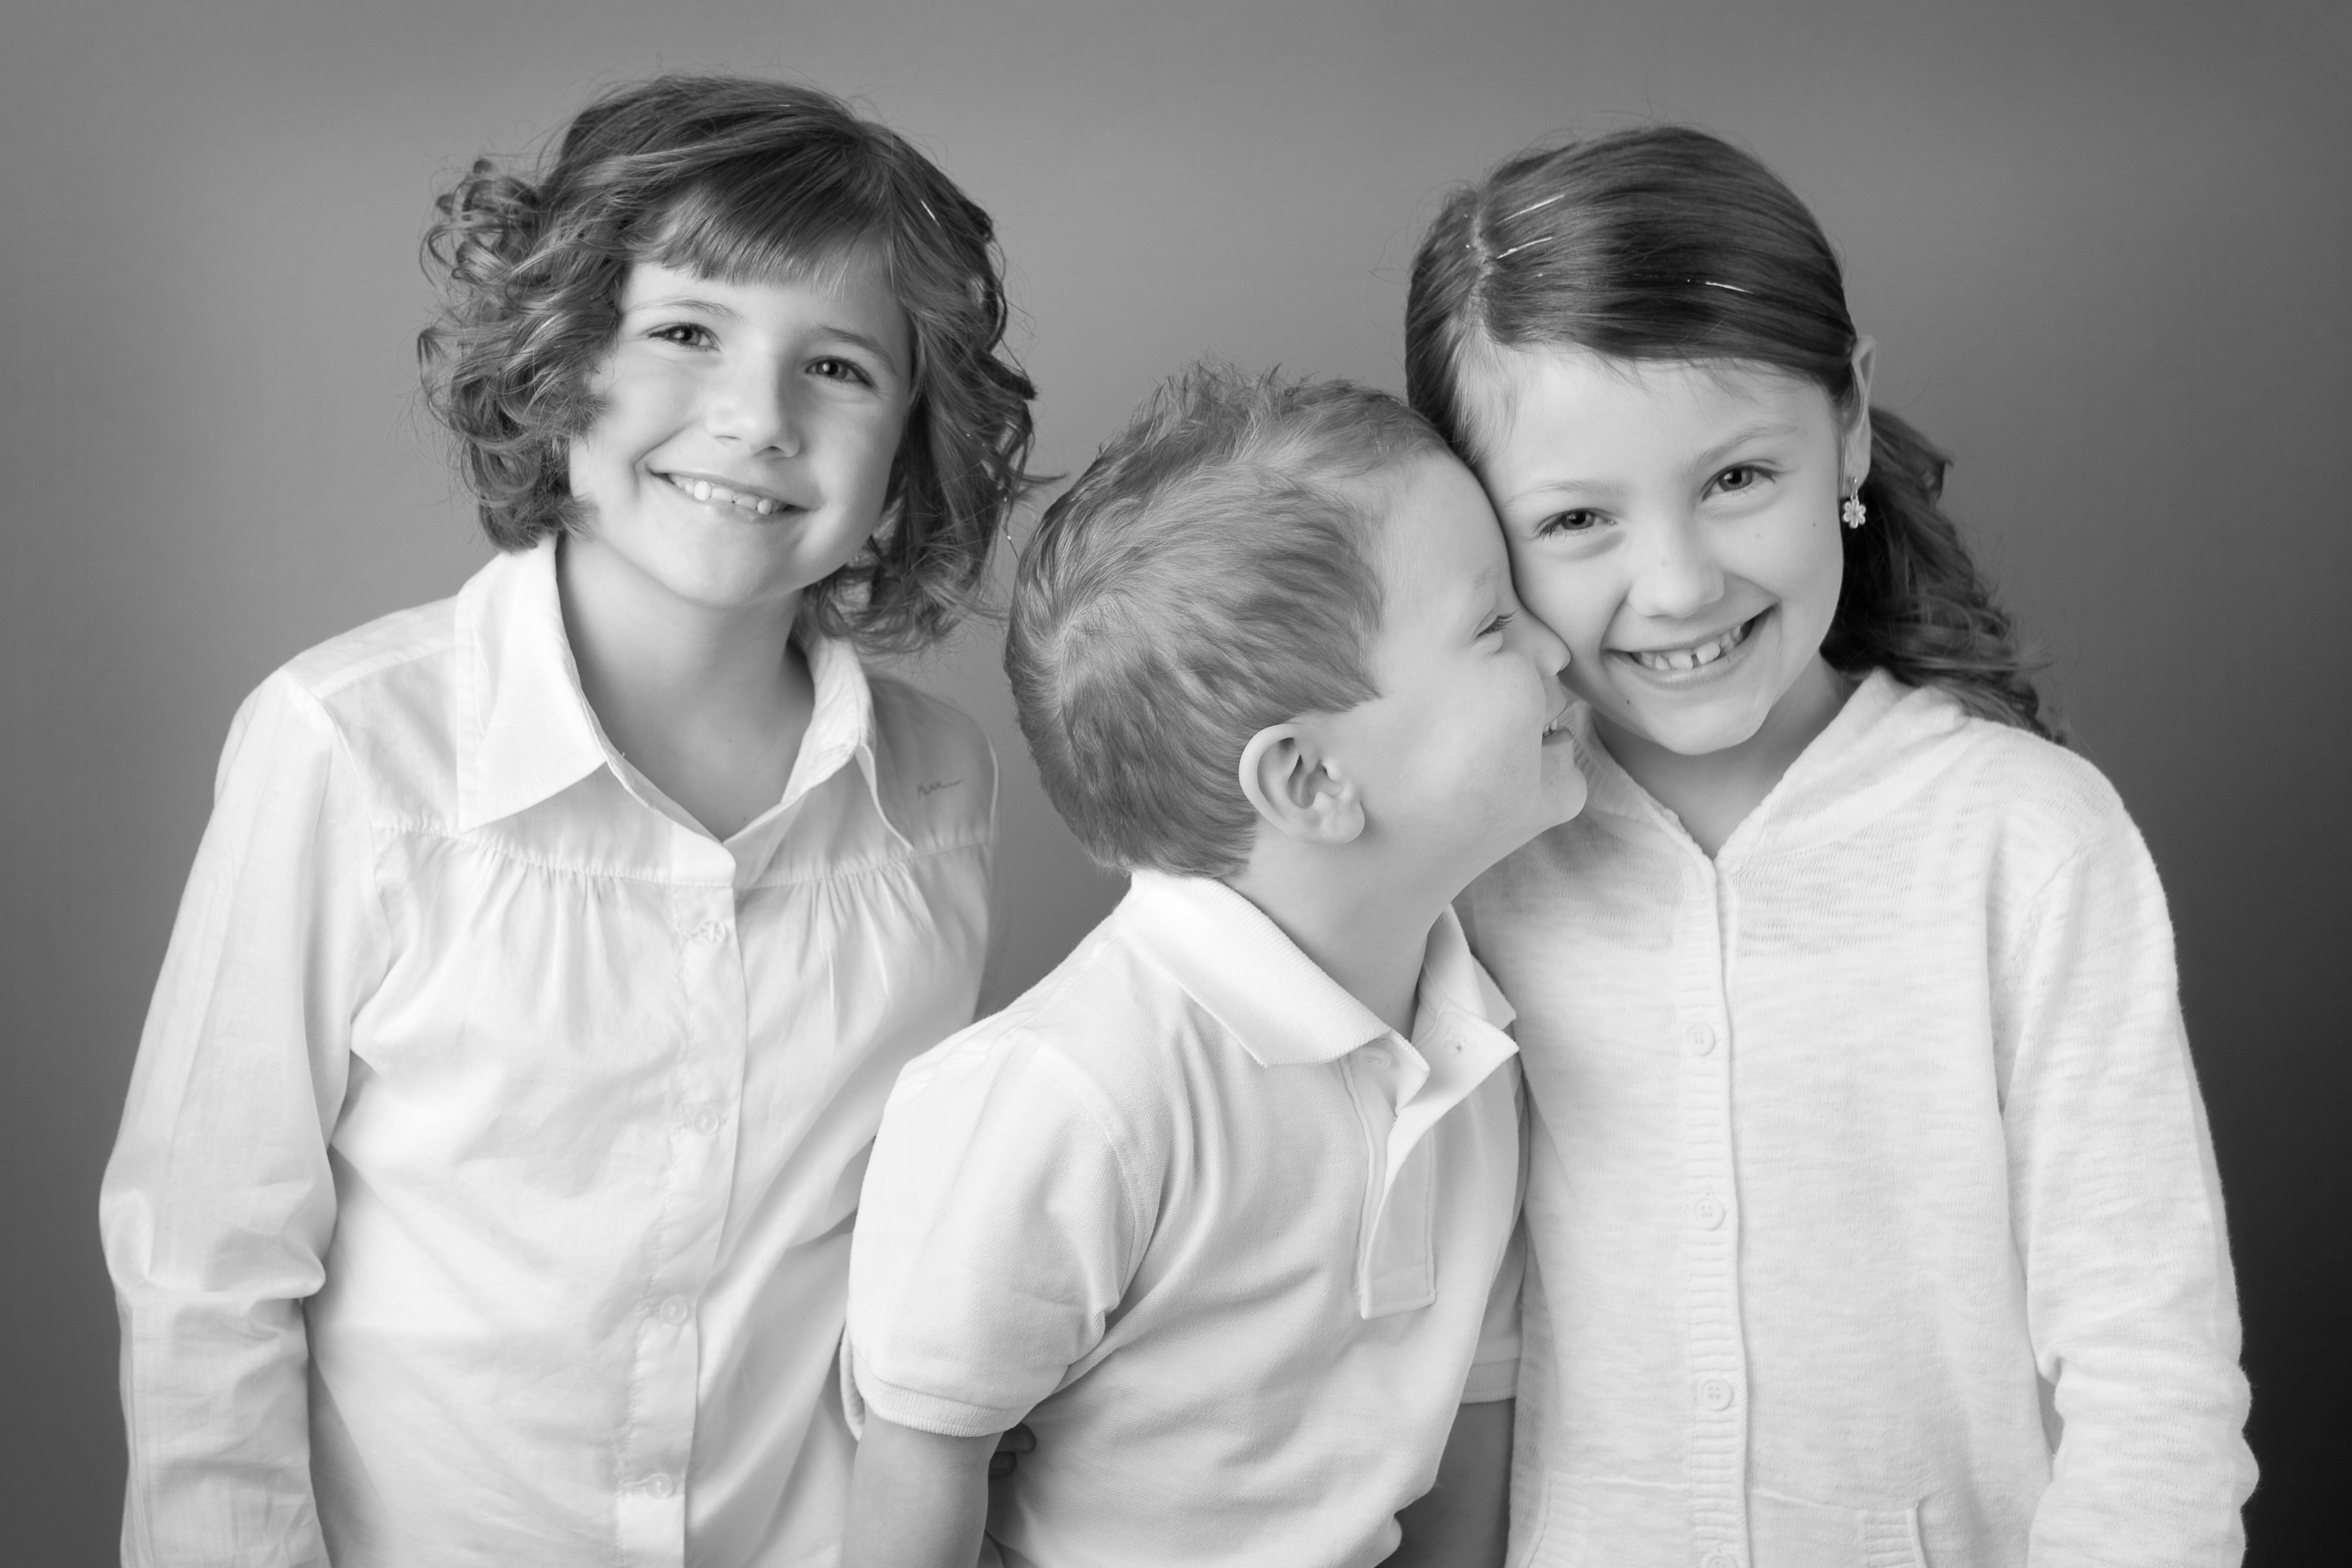 Three young children in white shirts pose together playfully